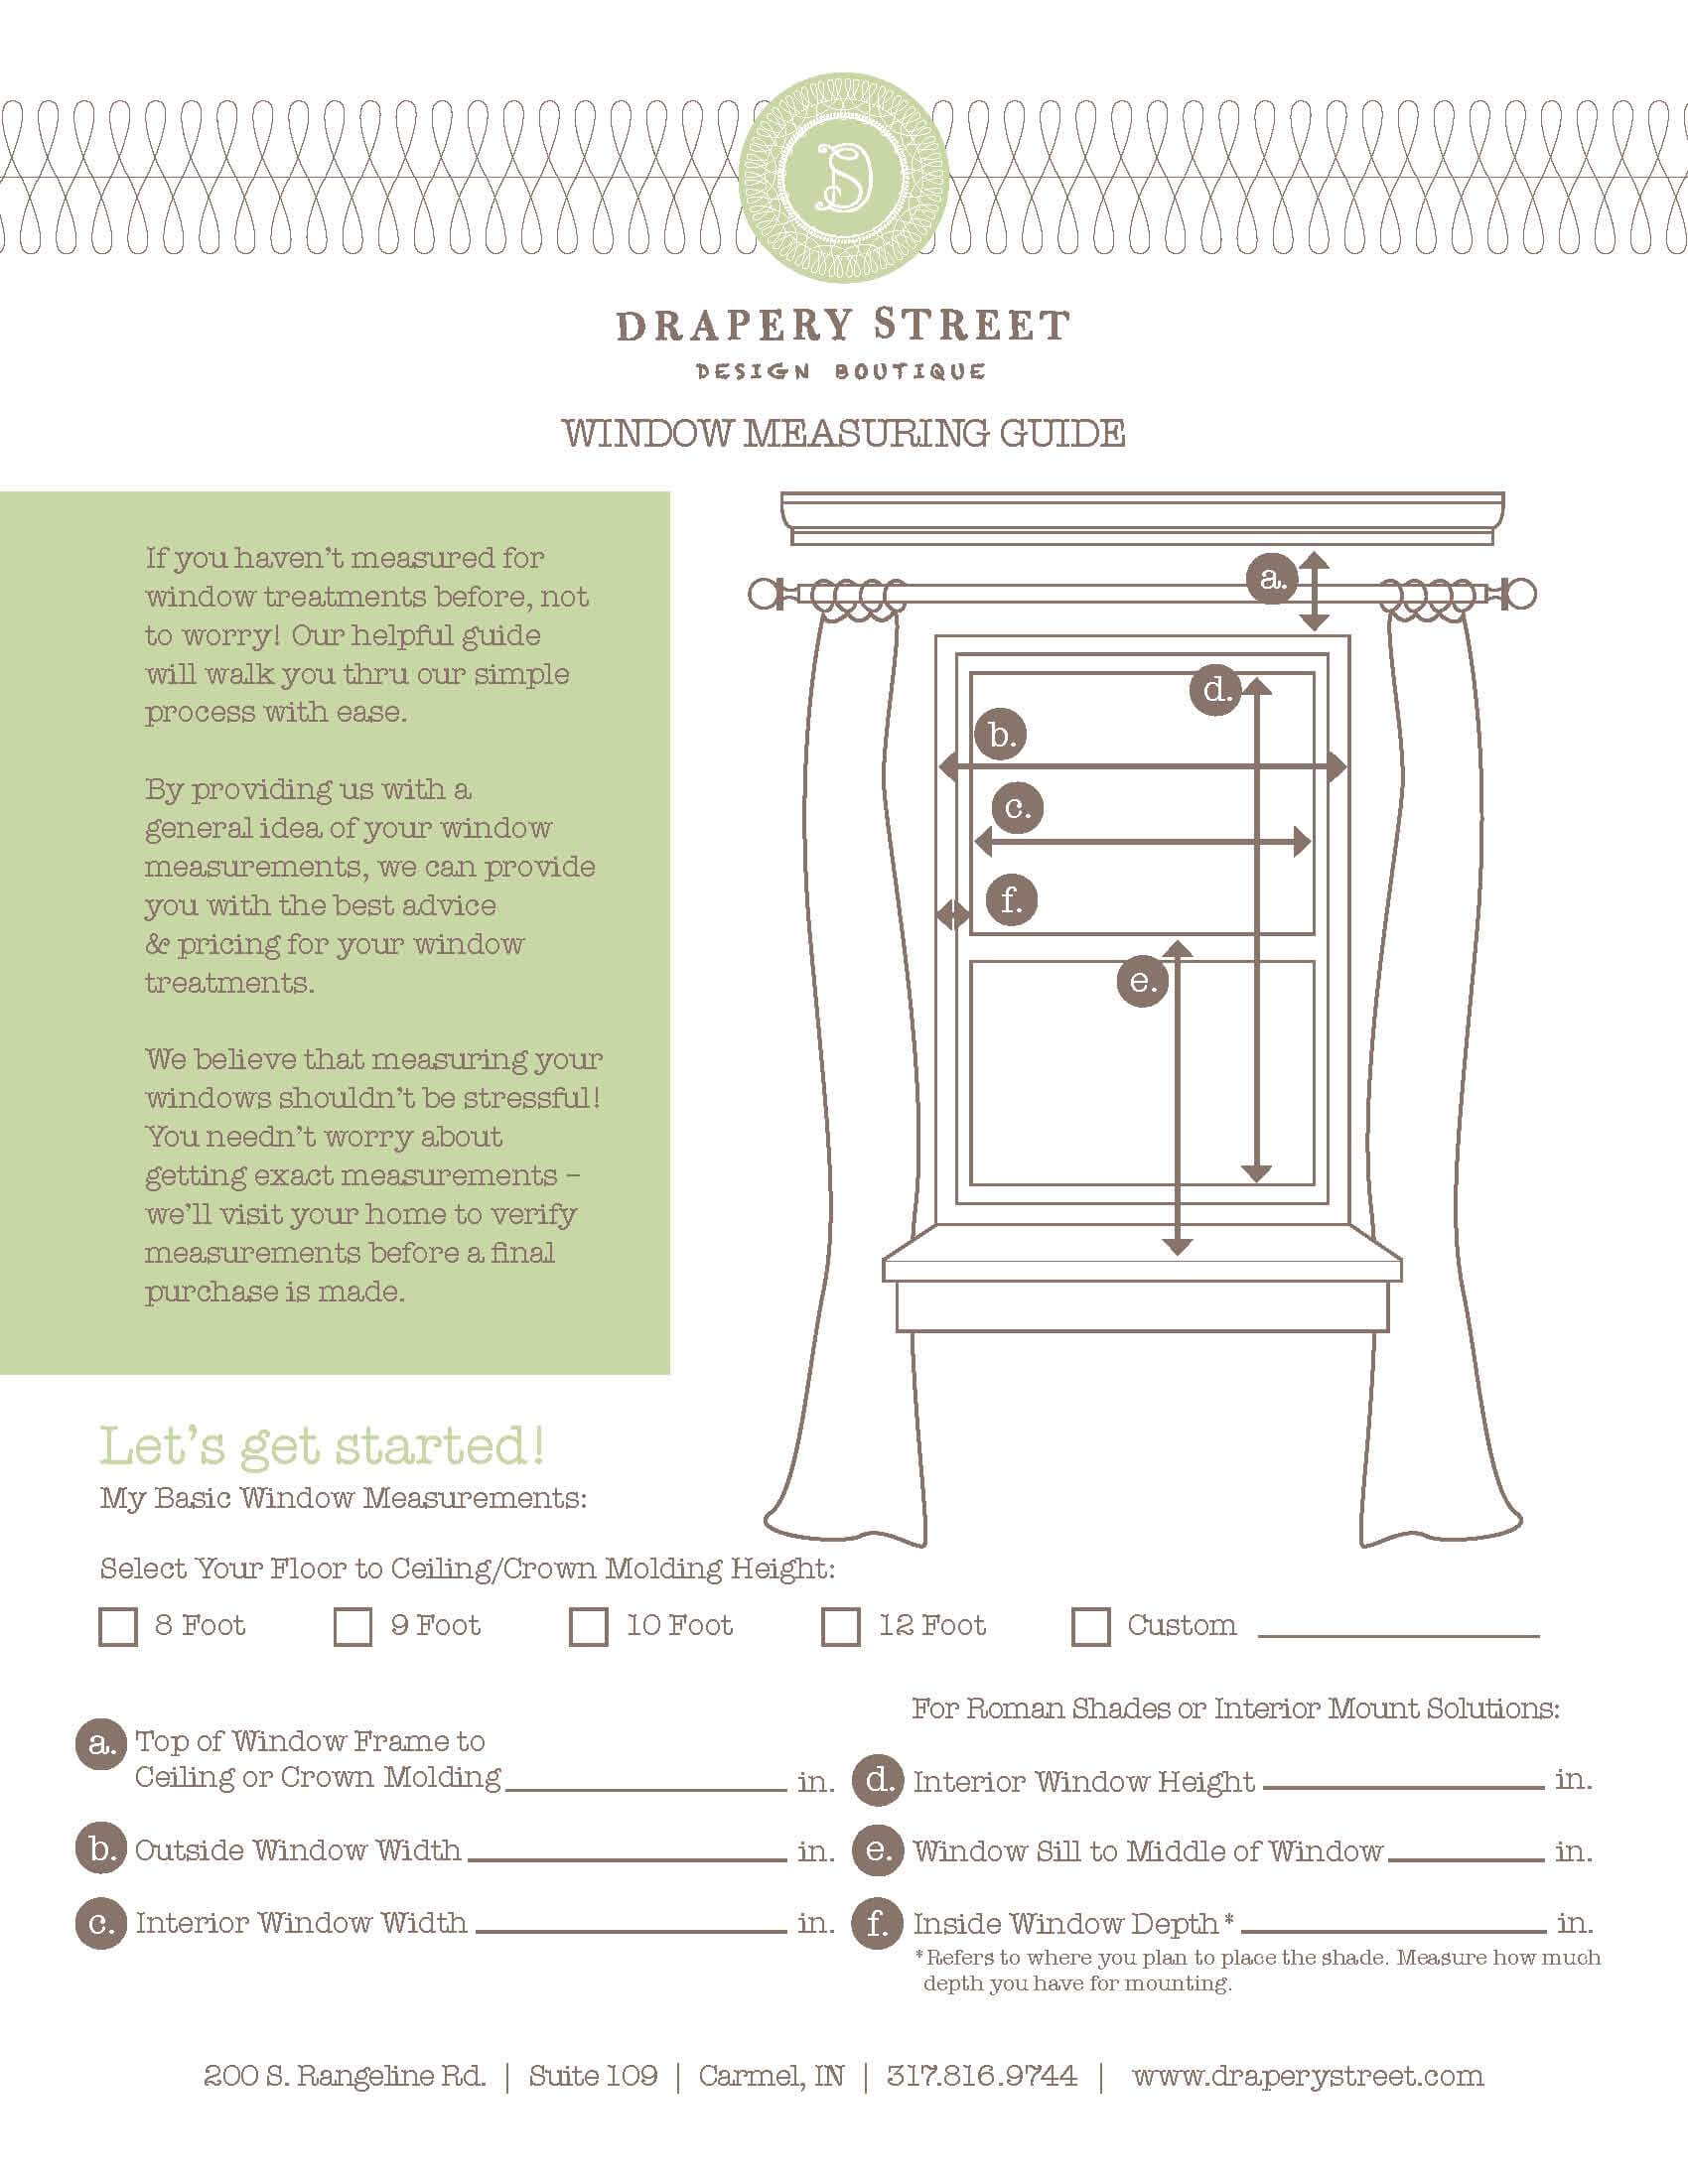 How To Measure Windows For D S And Window Treatments